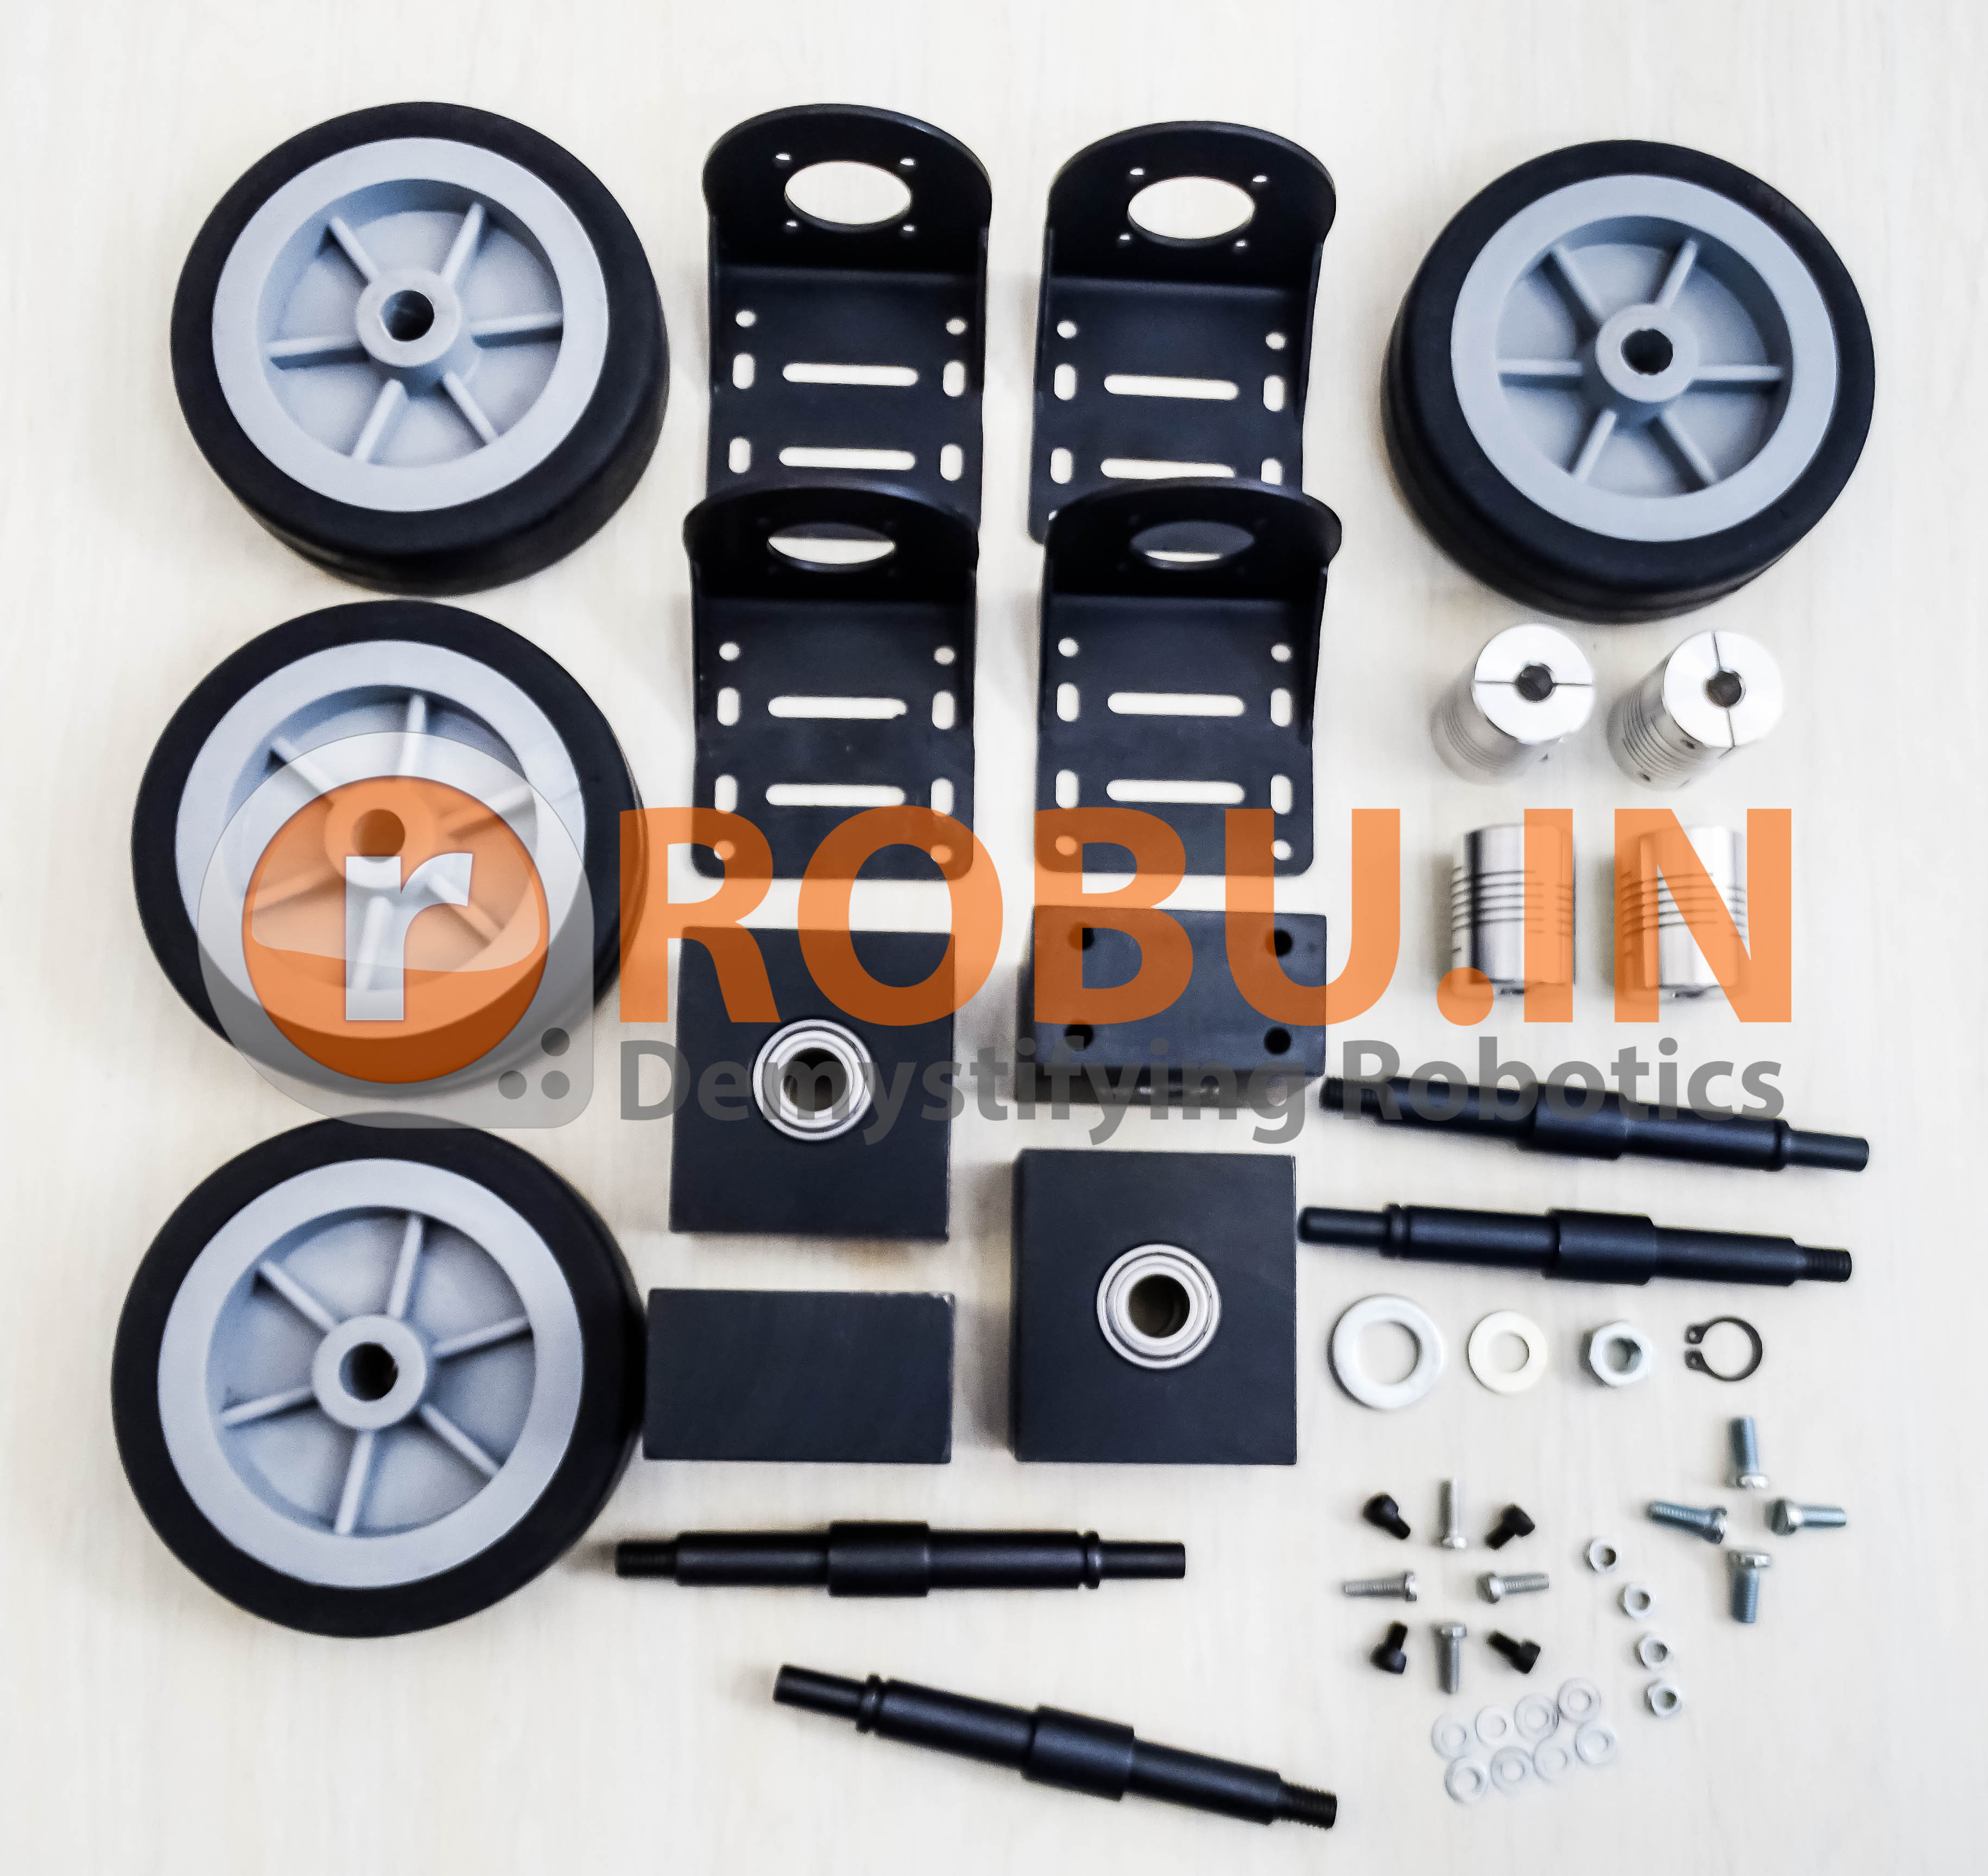 Drive Kit For IG-42 Planetary DC Geared Motor